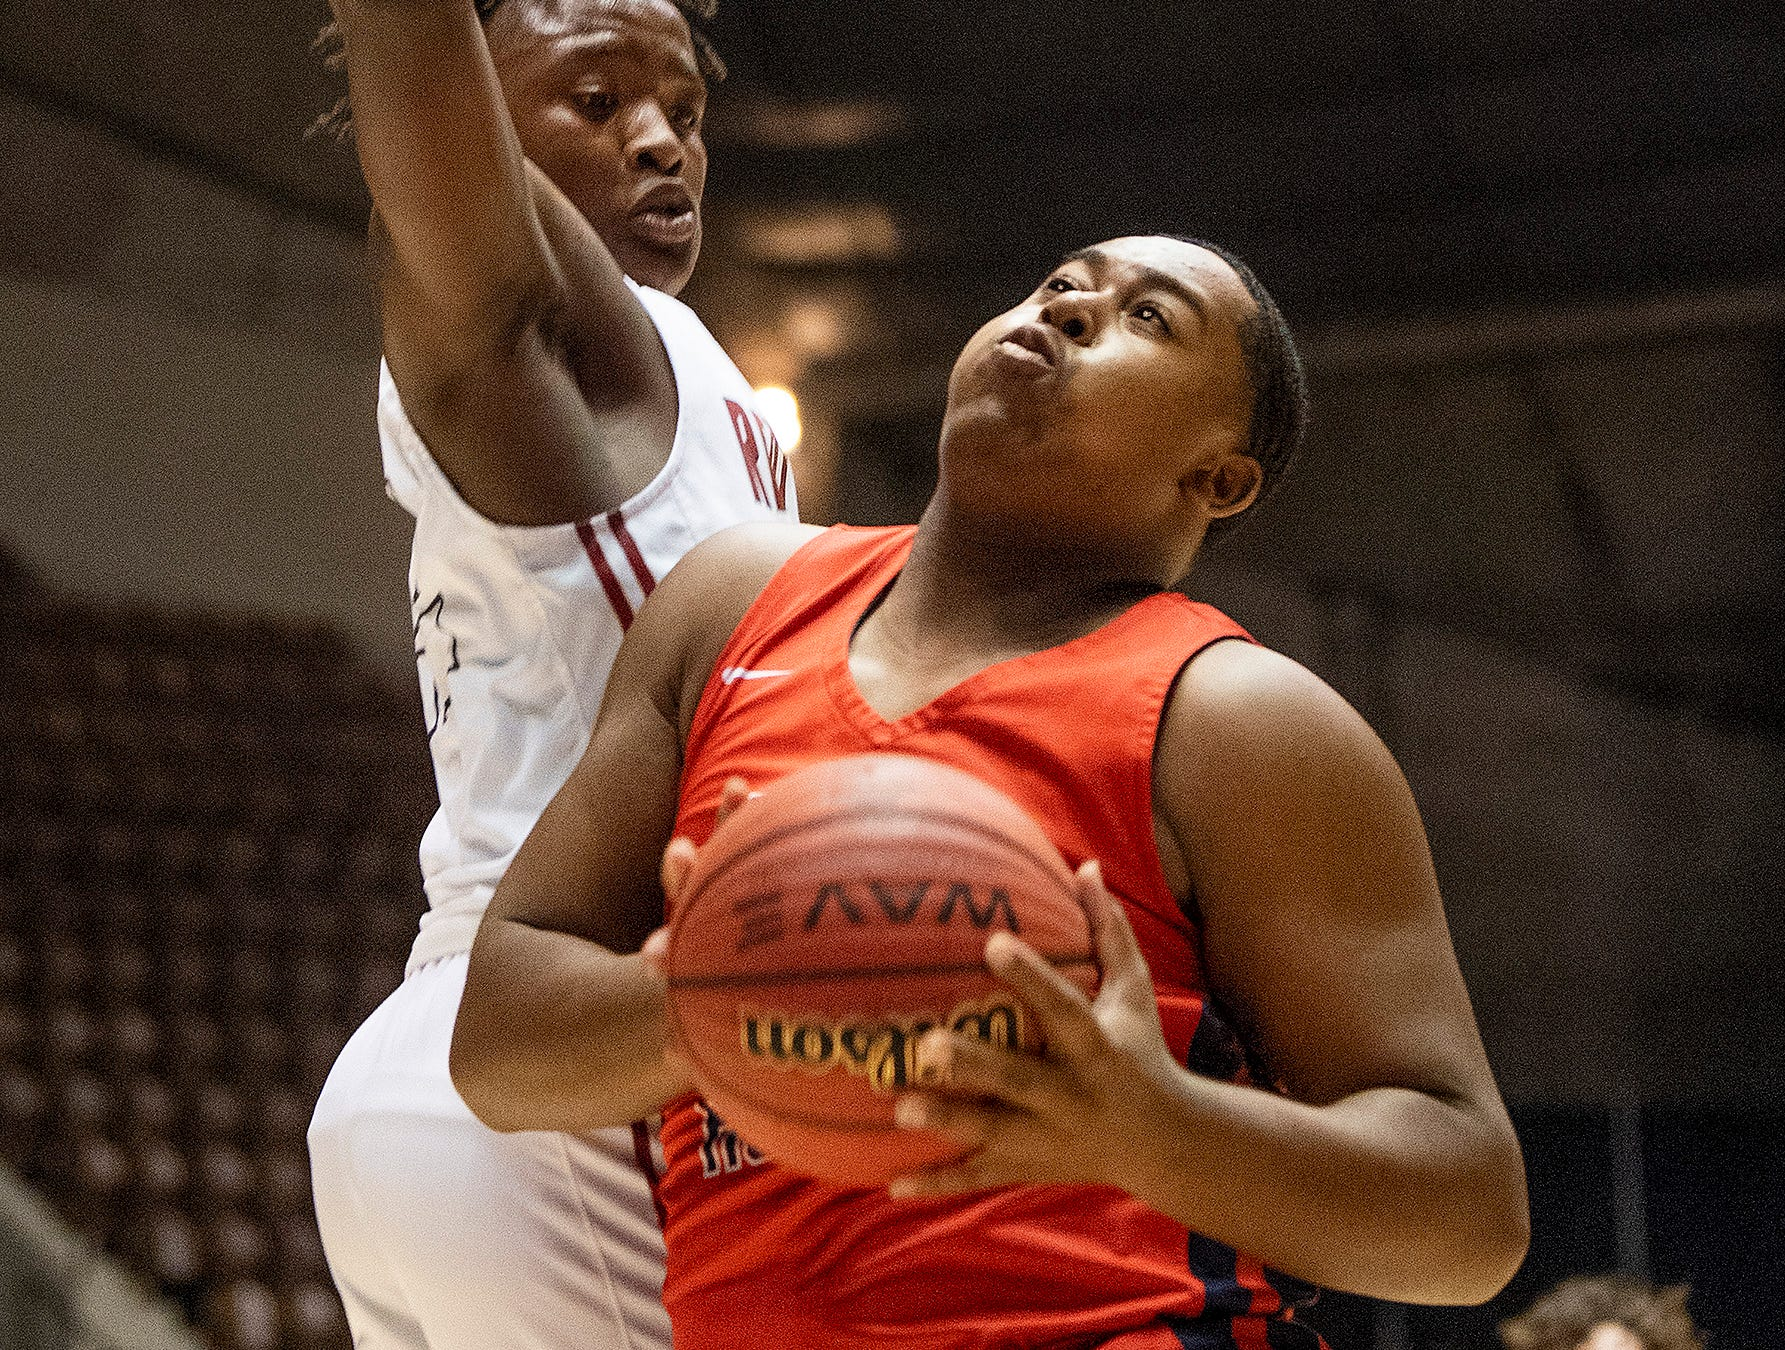 Pike Road's Jeremiah Frazier grabs a rebound against  Slocomb during AHSAA regional action Garrett Coliseum in Montgomery, Ala., on Saturday February 16, 2019.